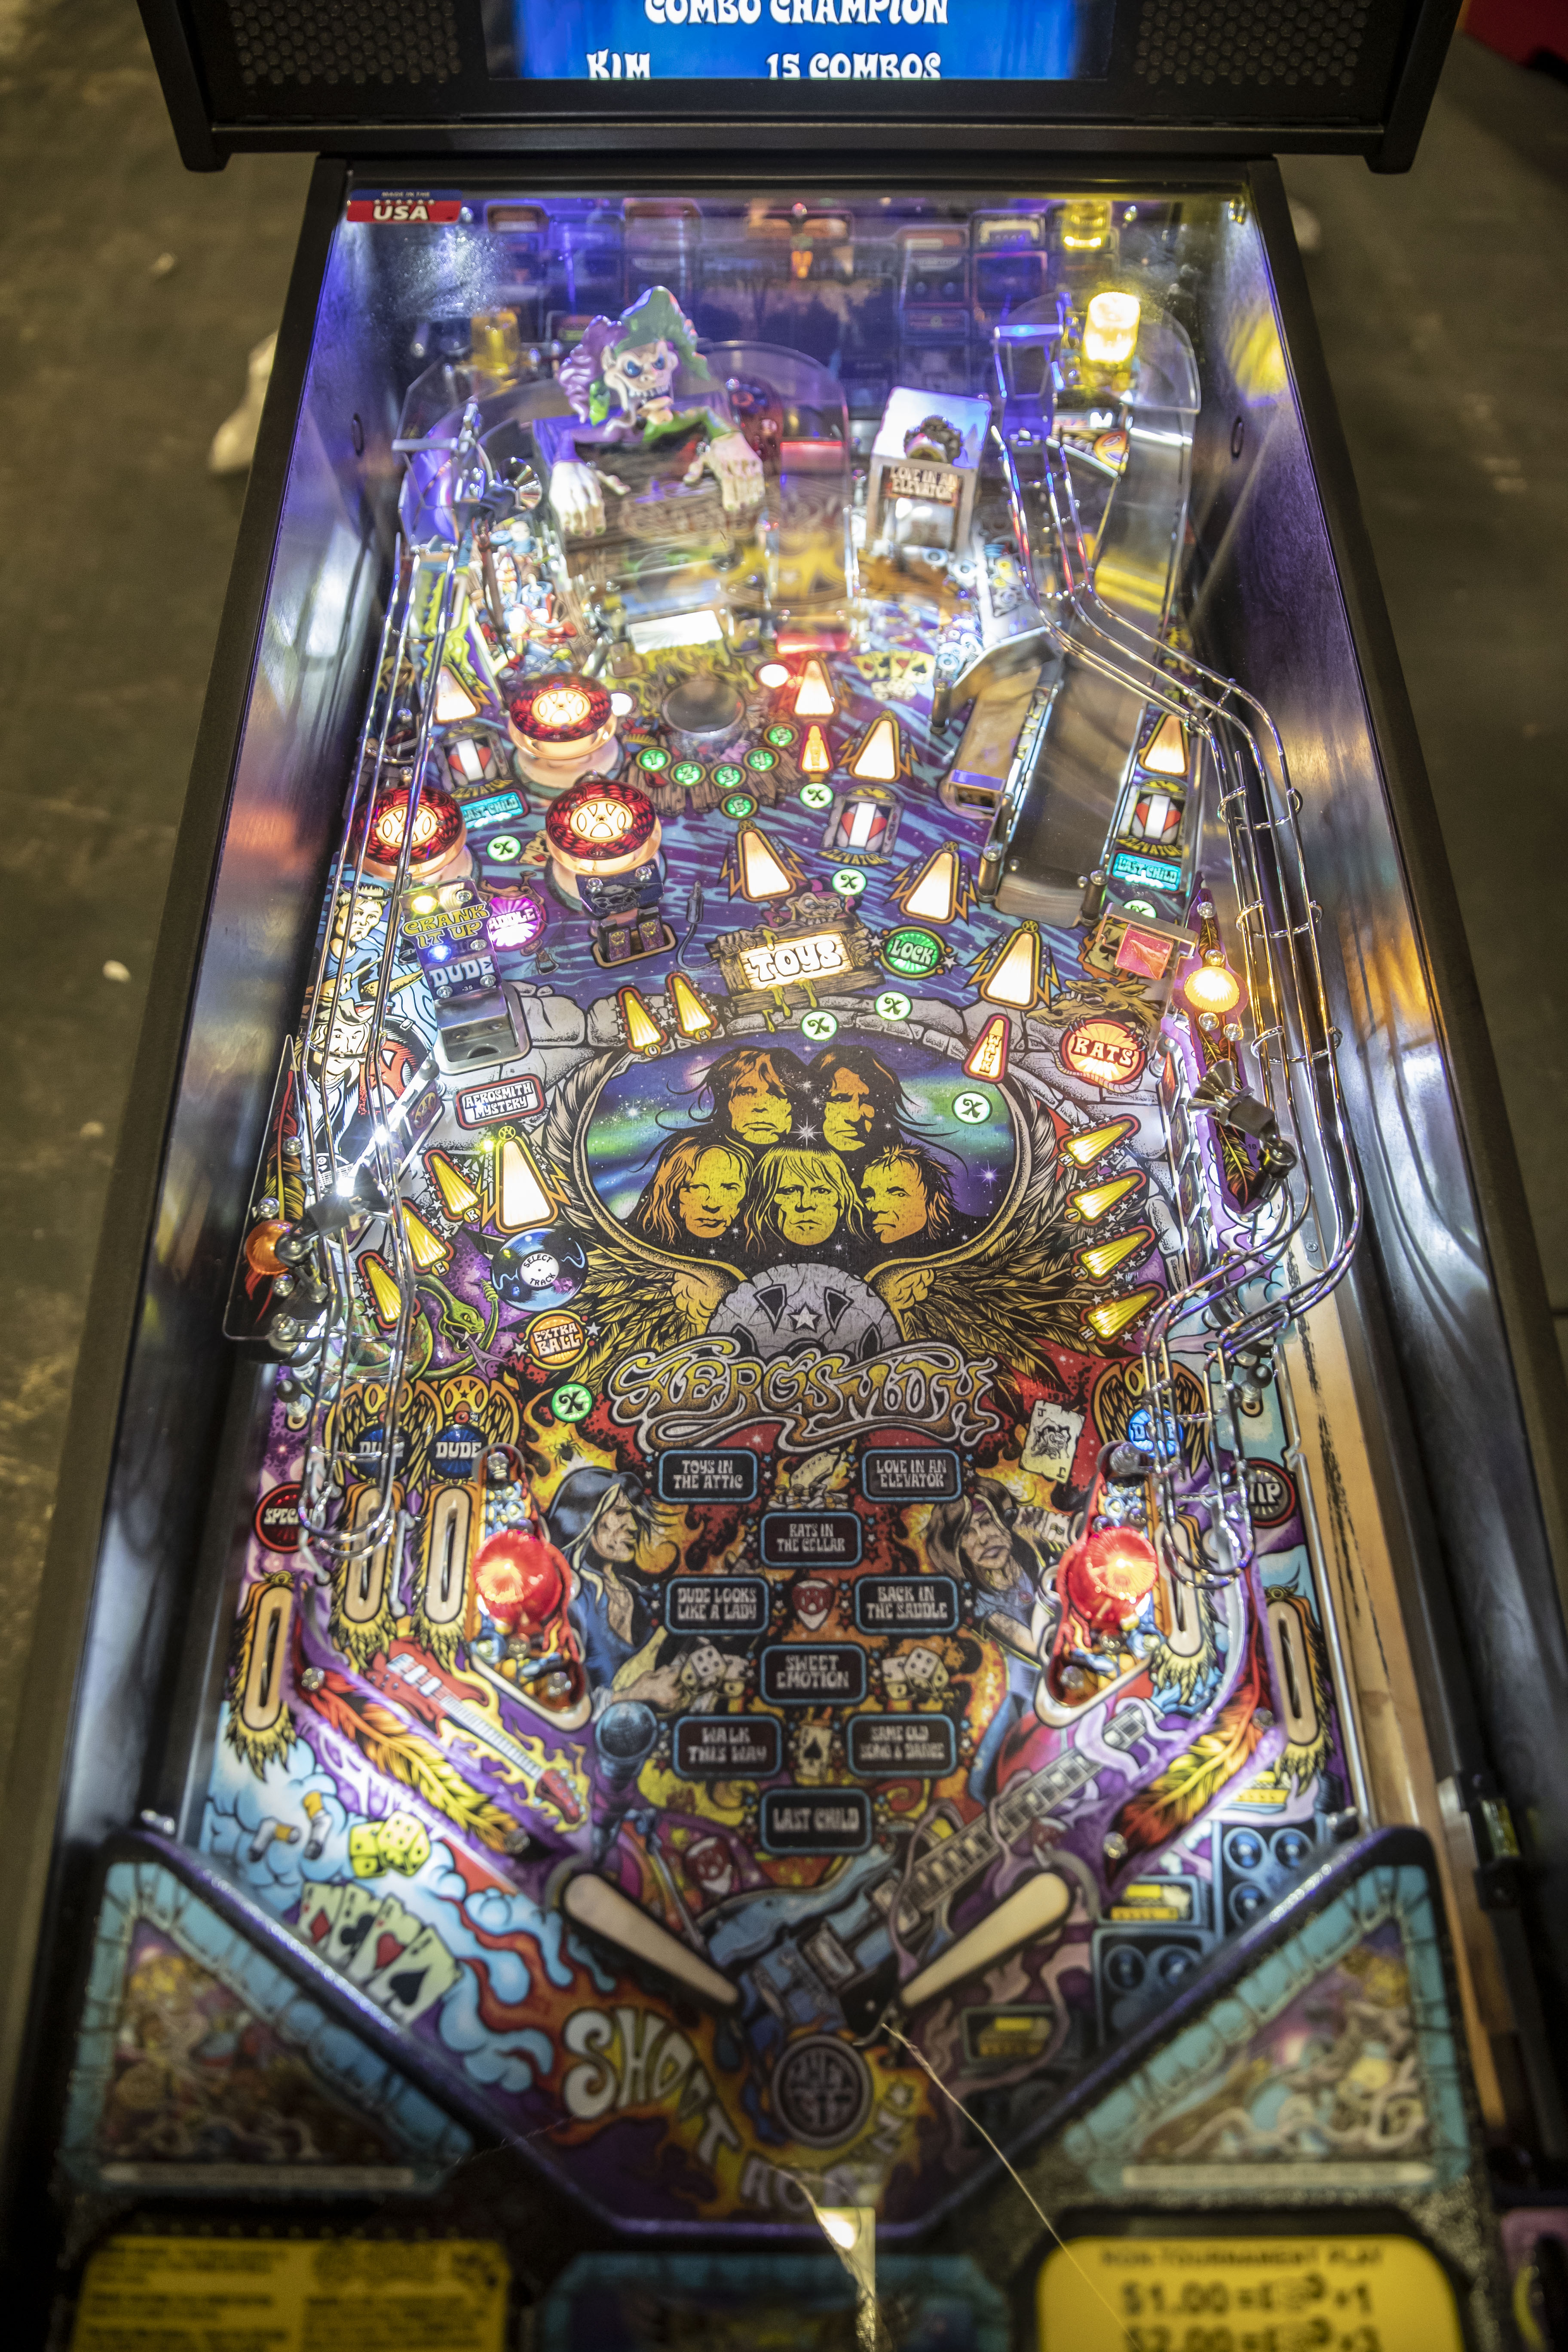 Lot 111 - Areosmith Pro pinball by Stern - Functional. Used, shows commercial use. See pictures.